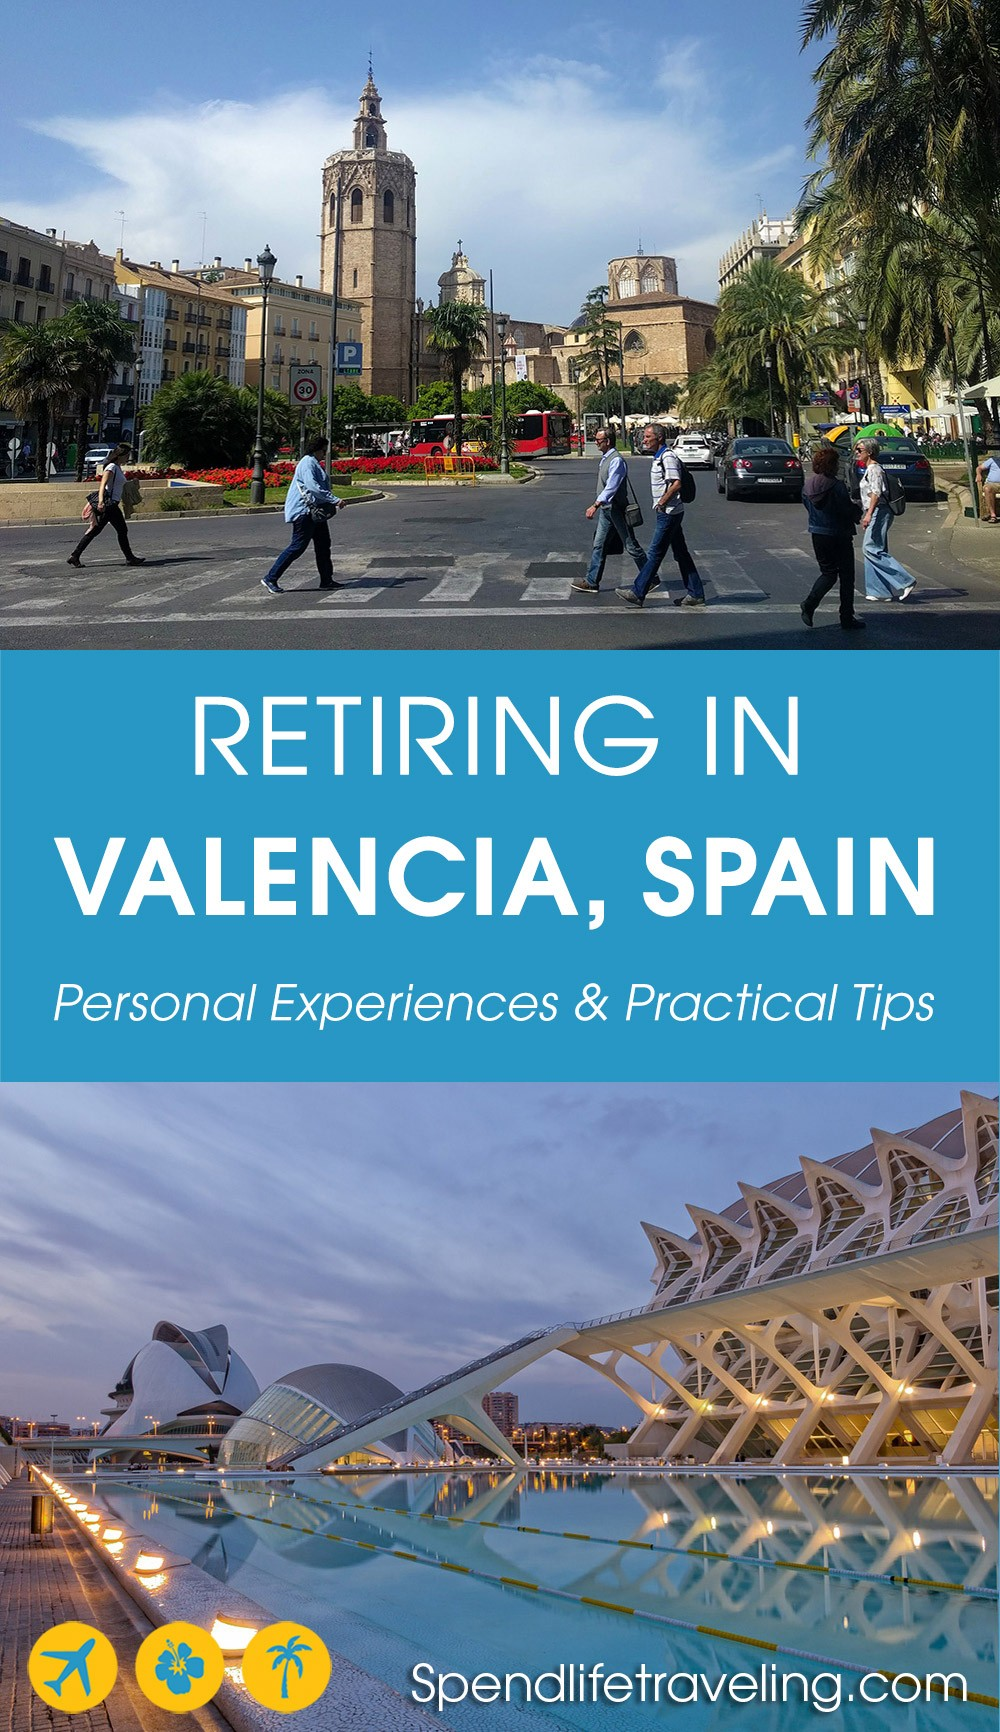 4 interviews with people who decided to move to Valencia to retire